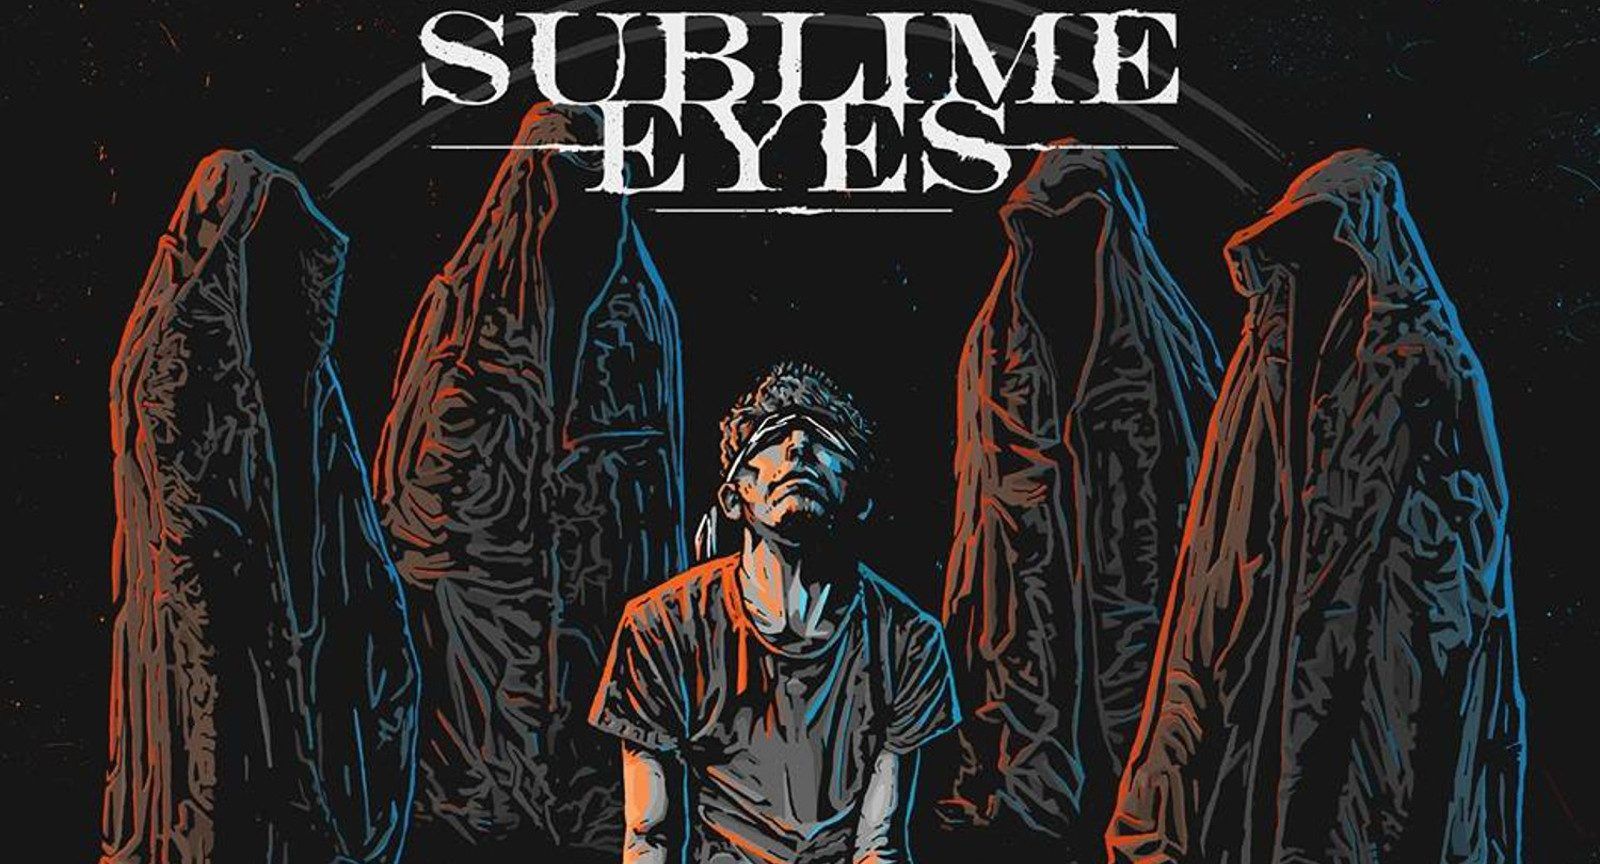 SUBLIME EYES – Sermons & Blindfolds